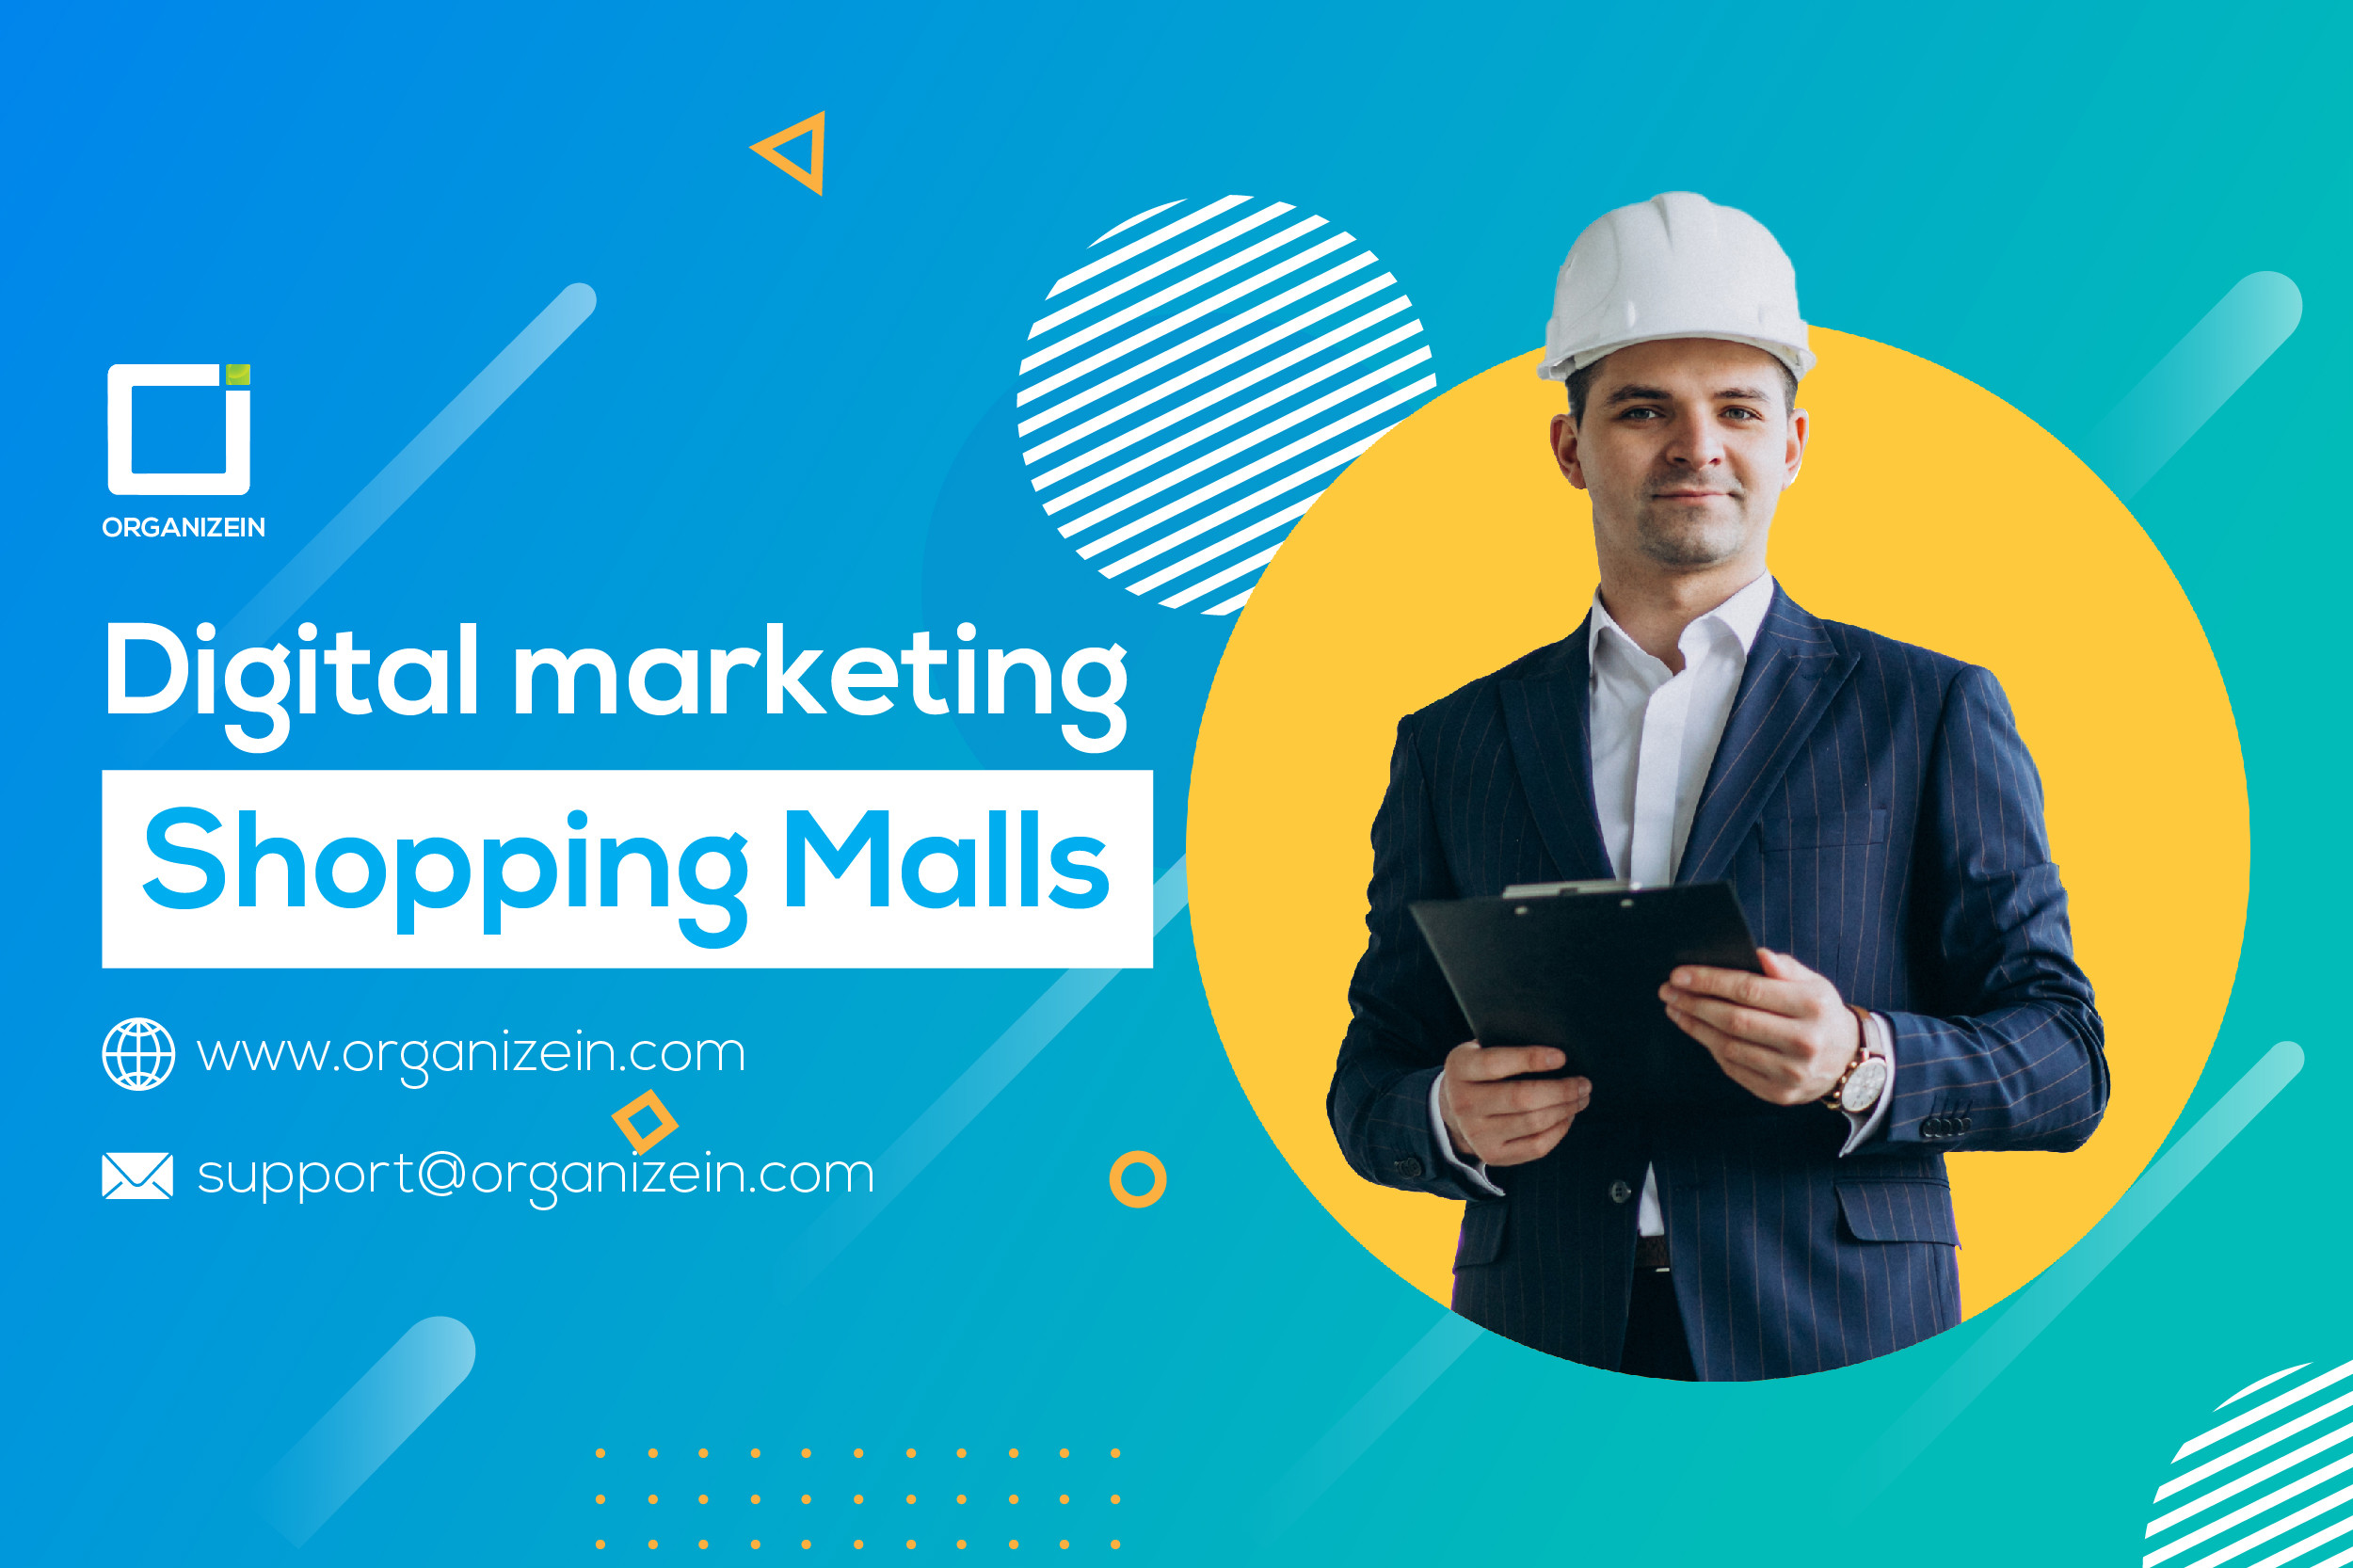 Digital marketing for shopping malls